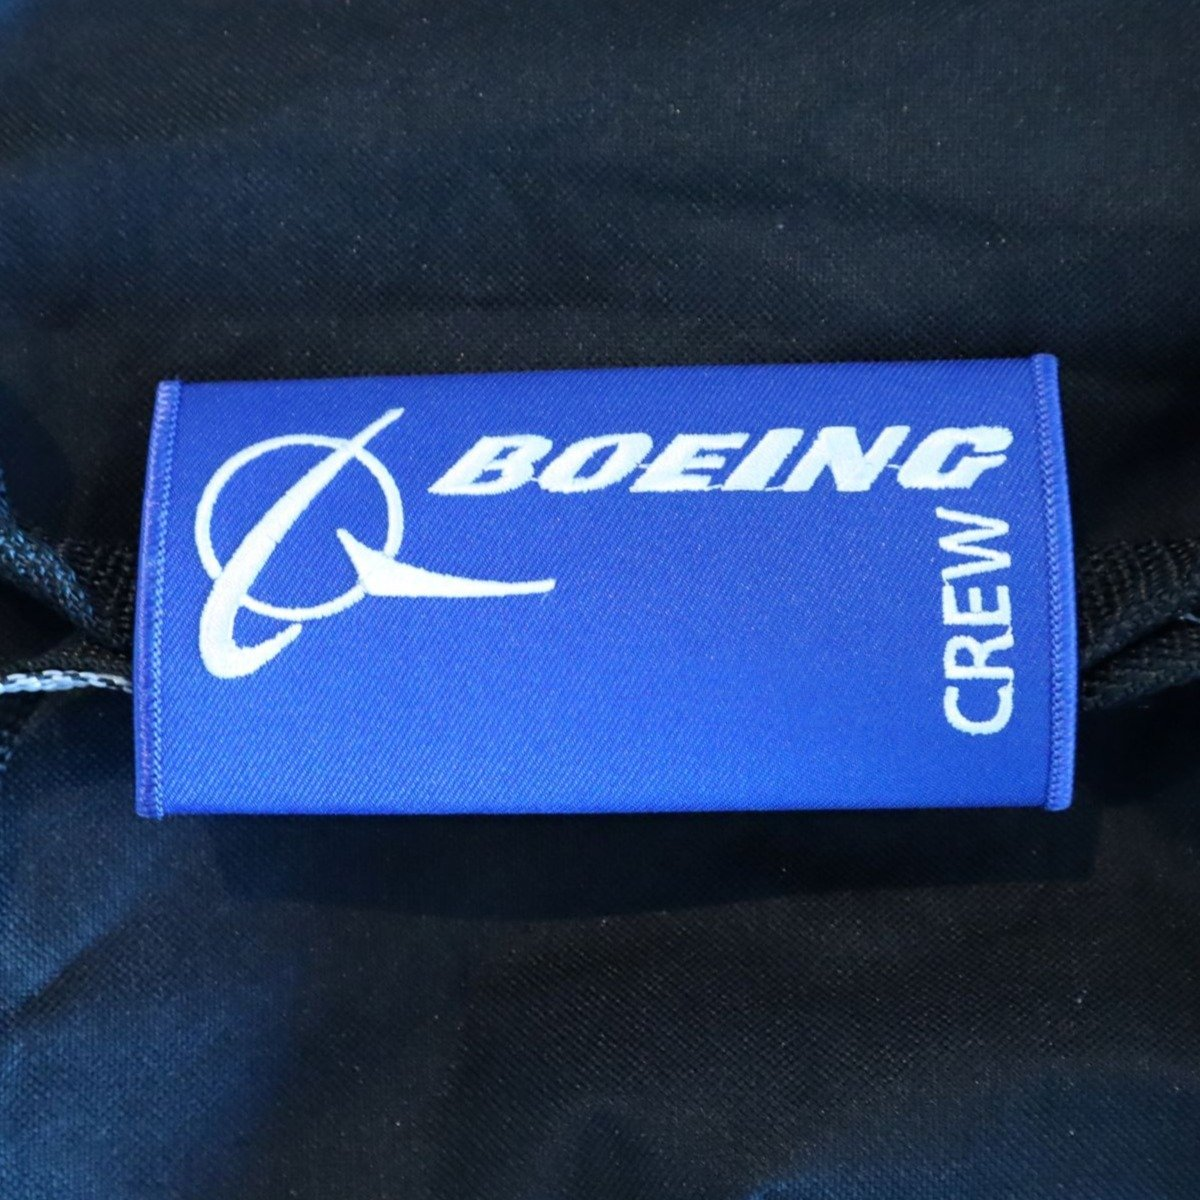 Boeing Crew - Bag Handle Wrap